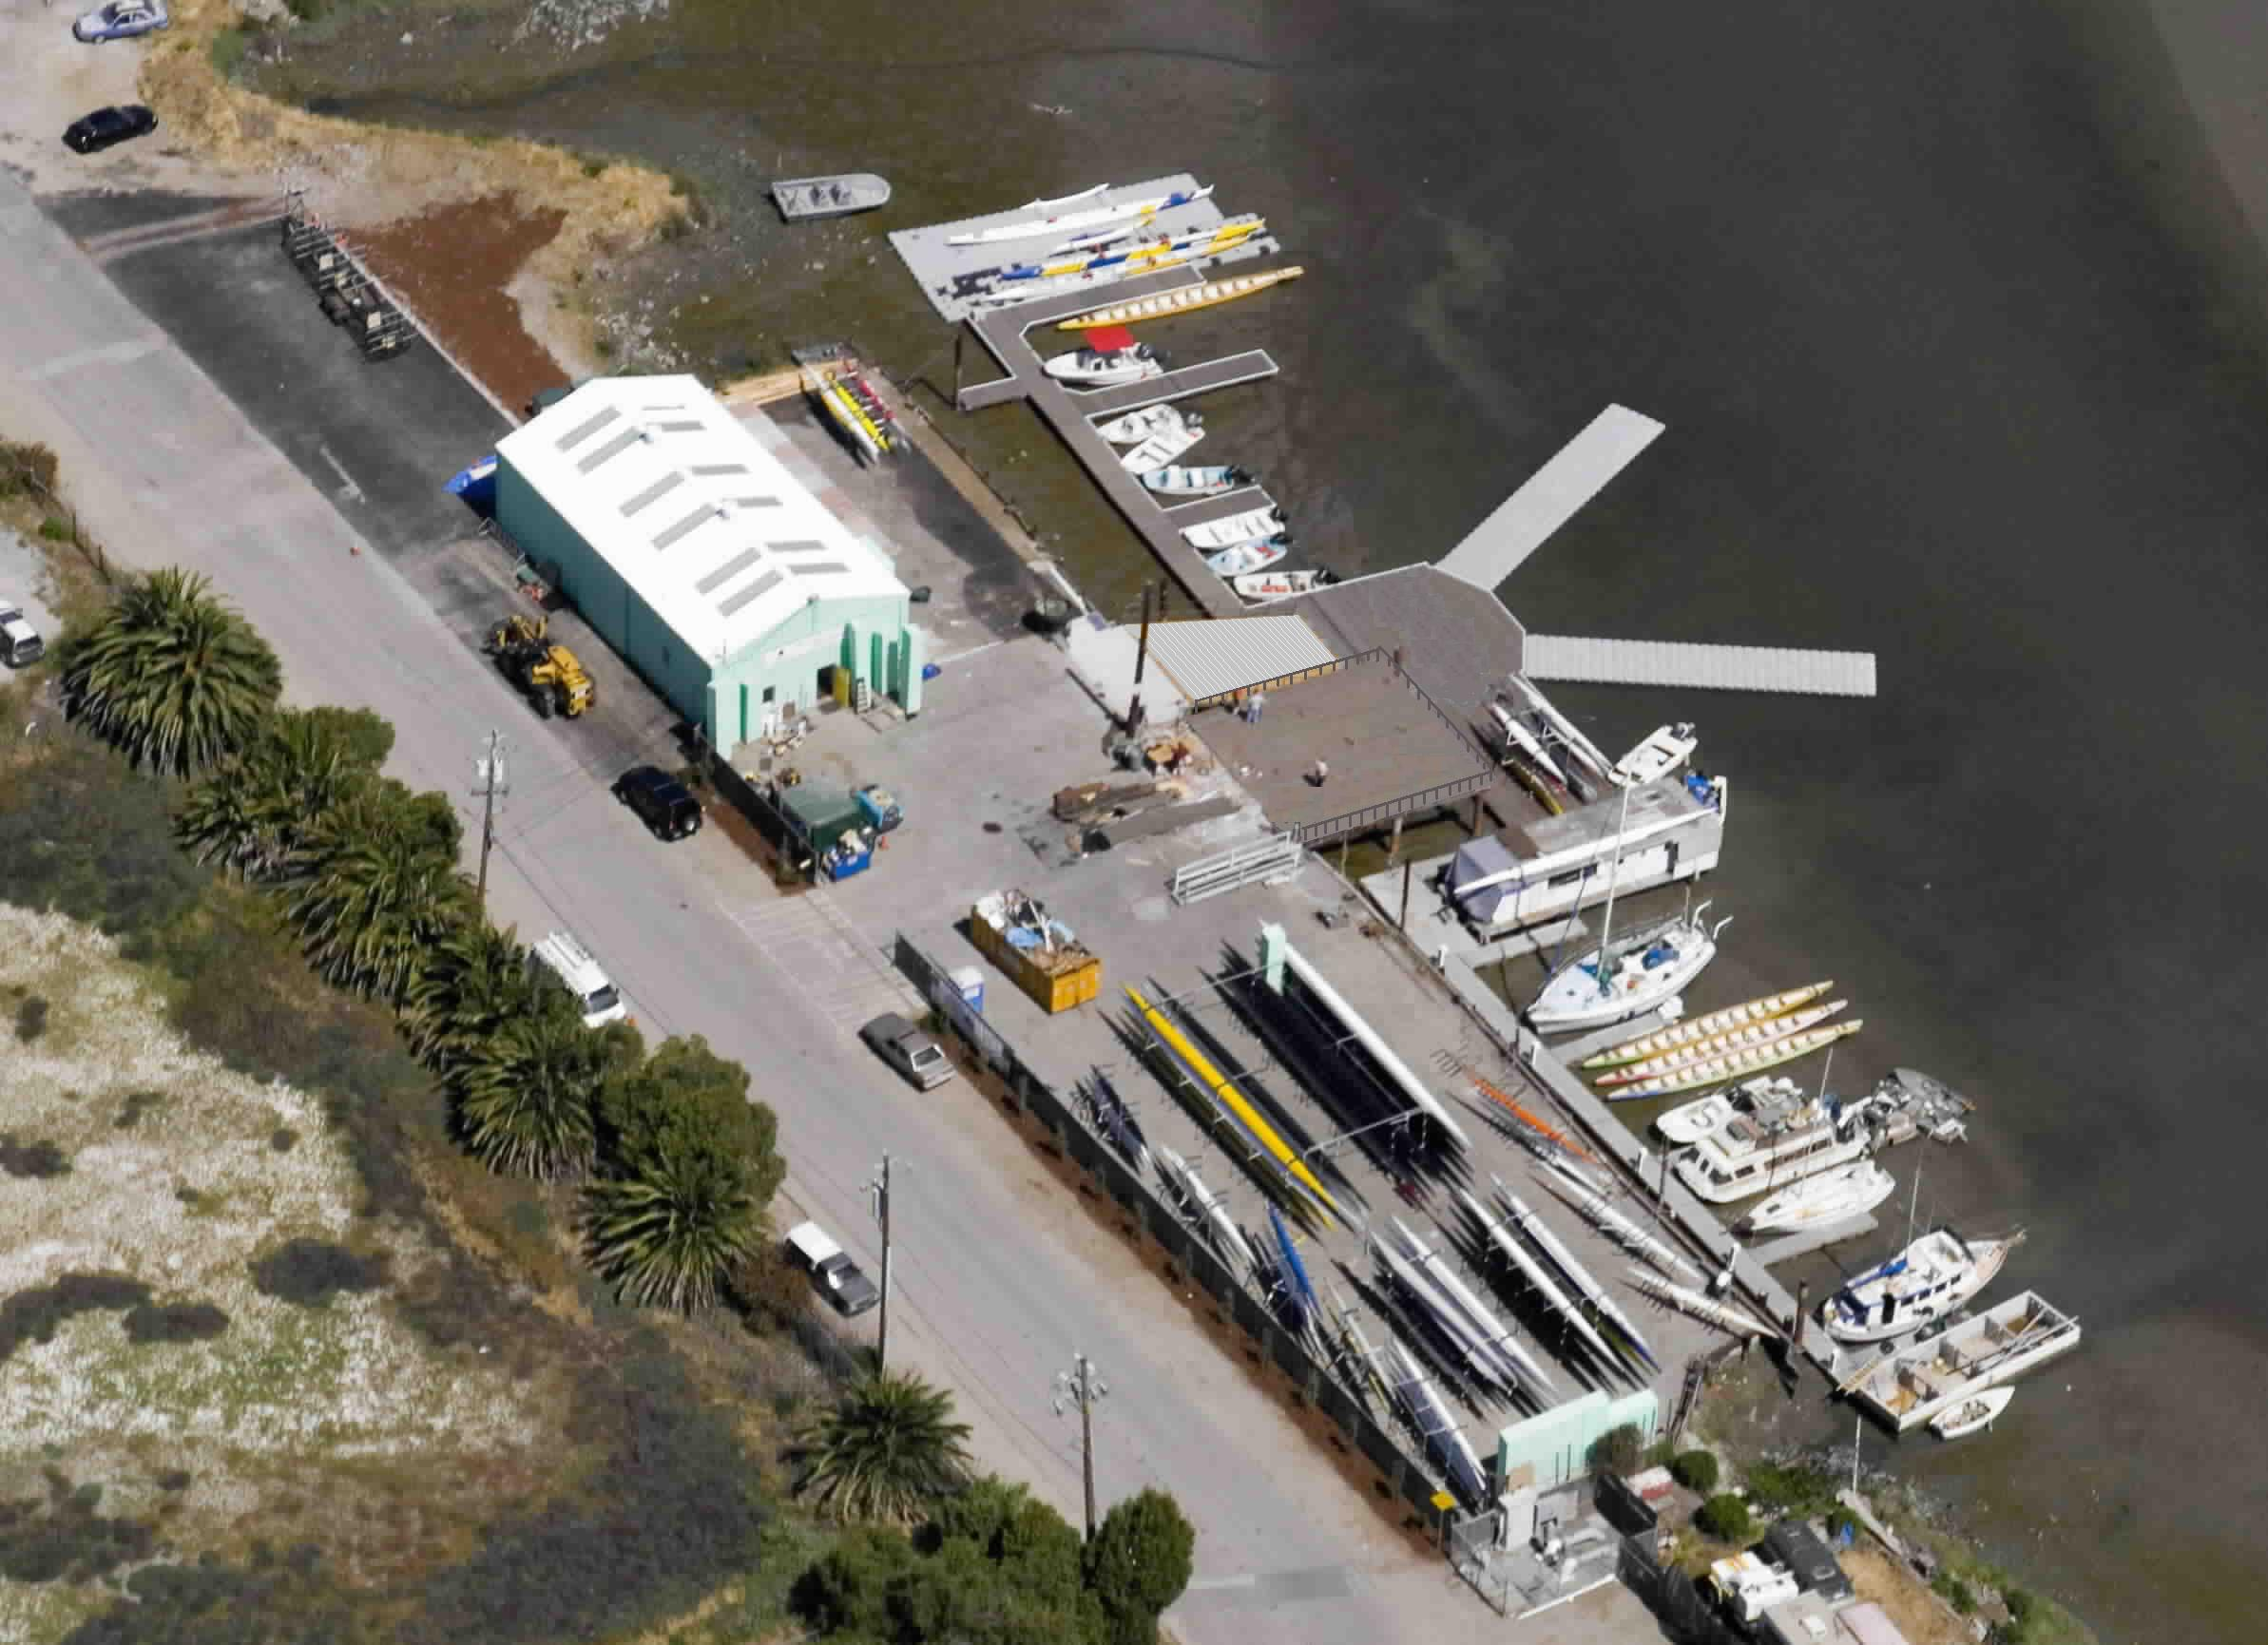 Overhead view of the BIAC boathouse in Redwood City